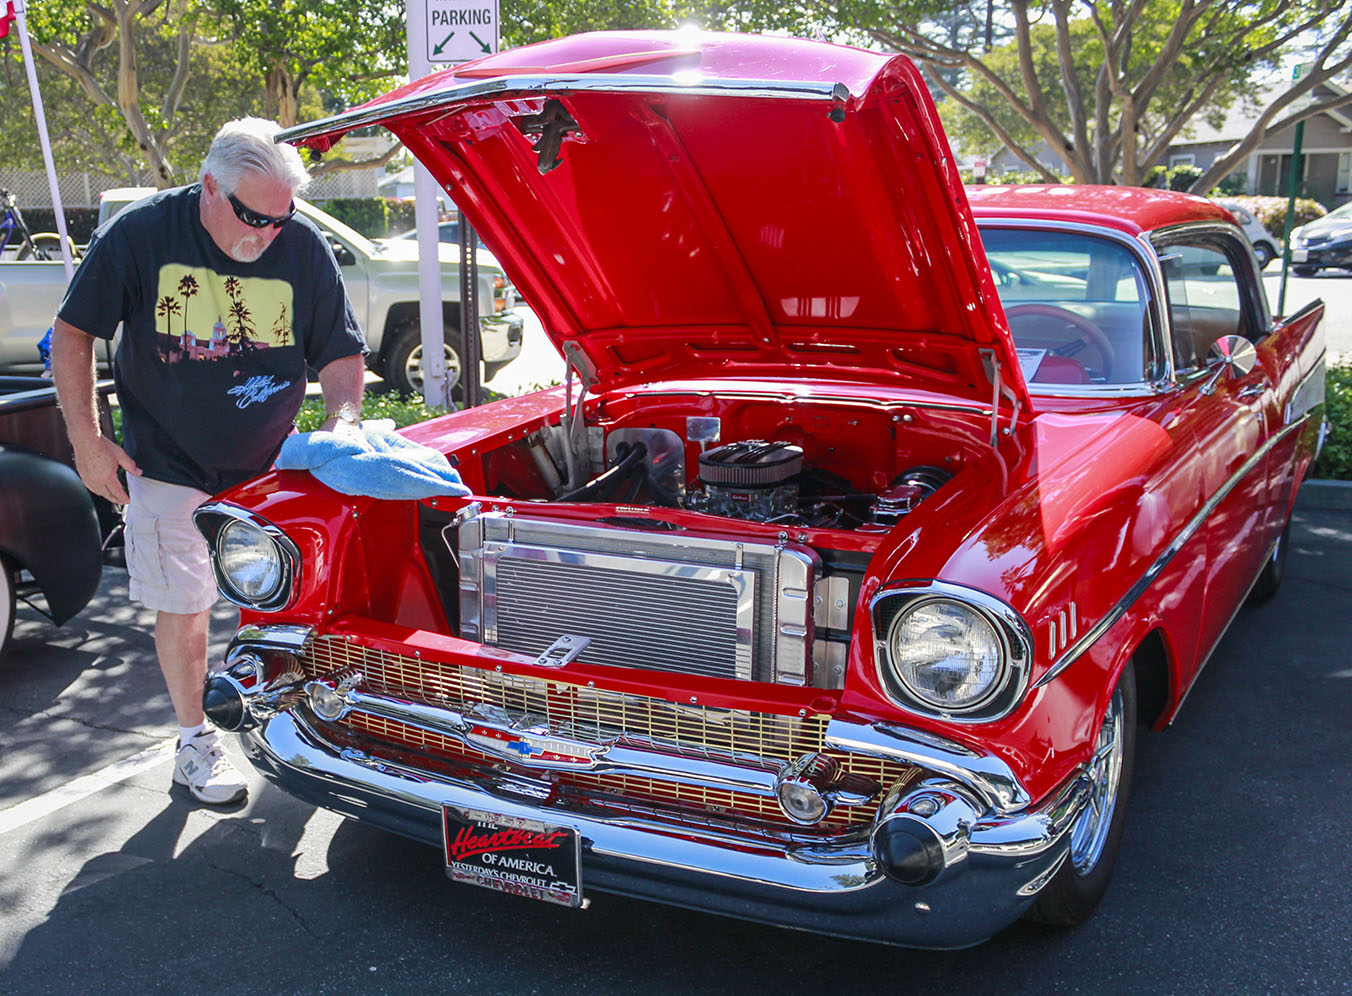 Classic cars cruise into downtown La Verne | Campus Times